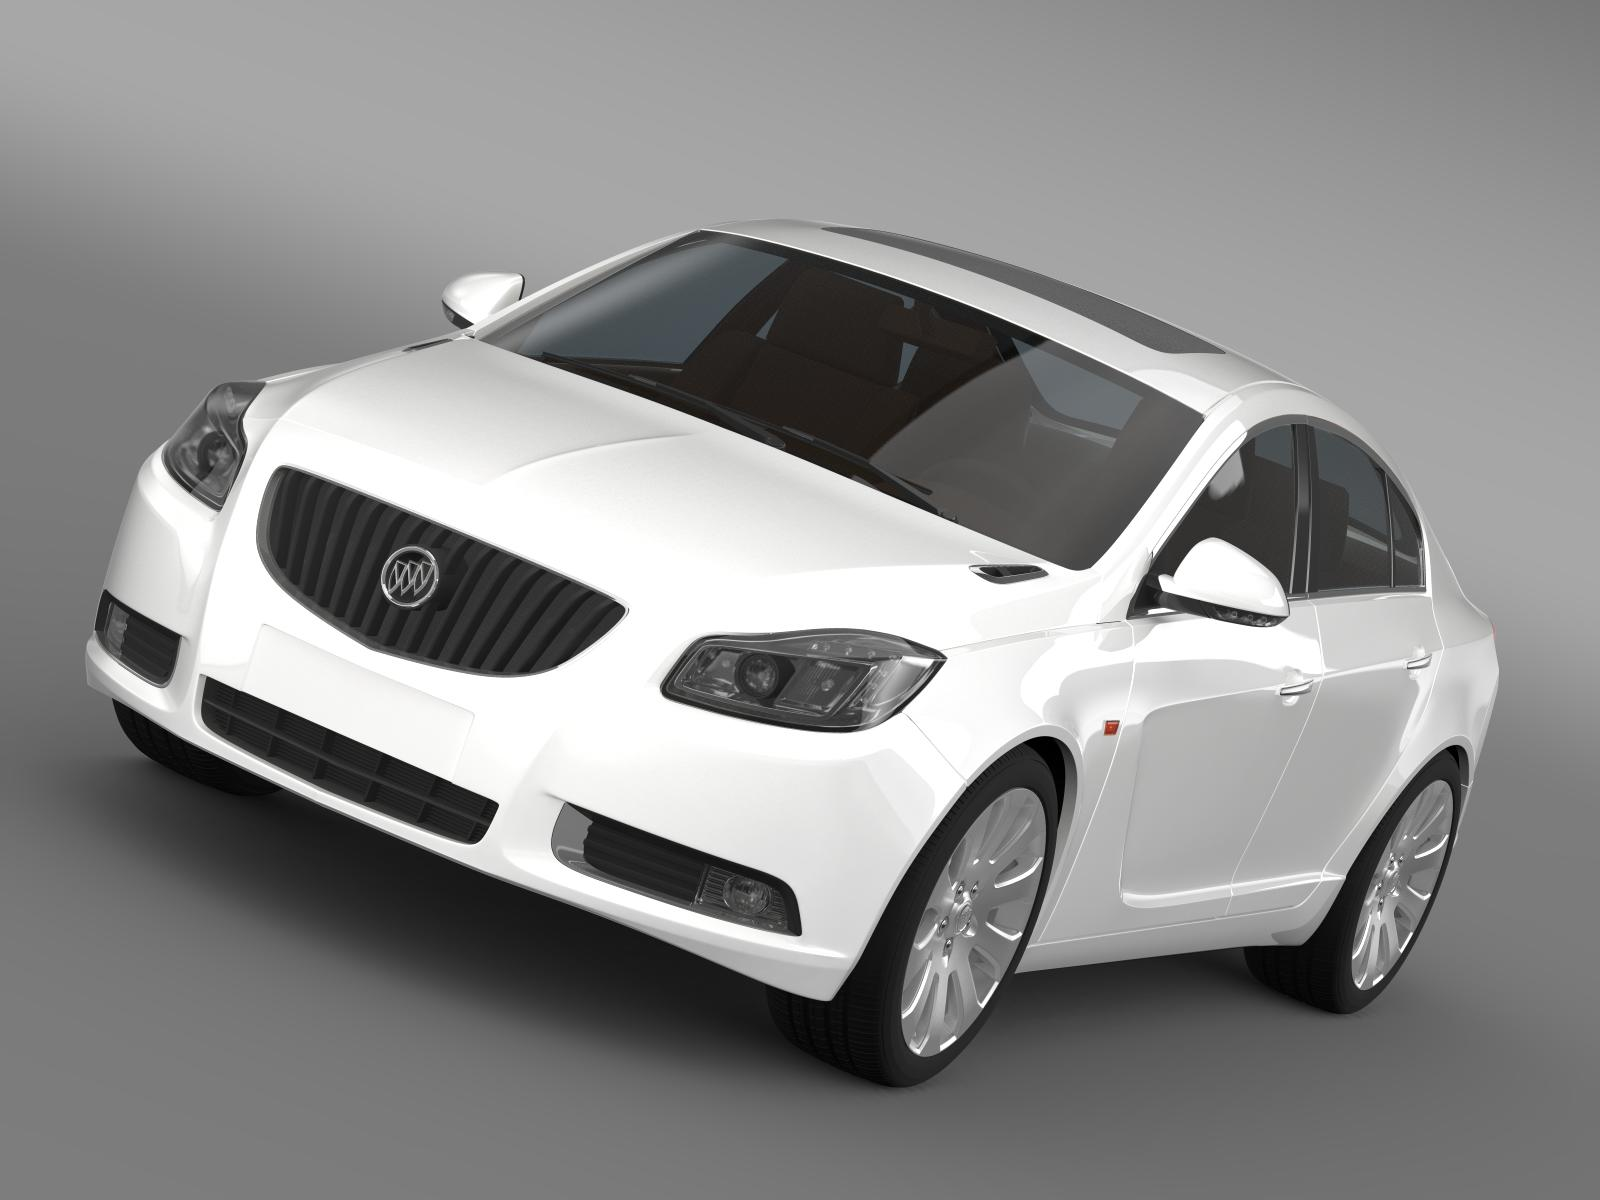 buick regal flexfuel 2011-2013 3d model 3ds max fbx c4d lwo ma mb hrc xsi